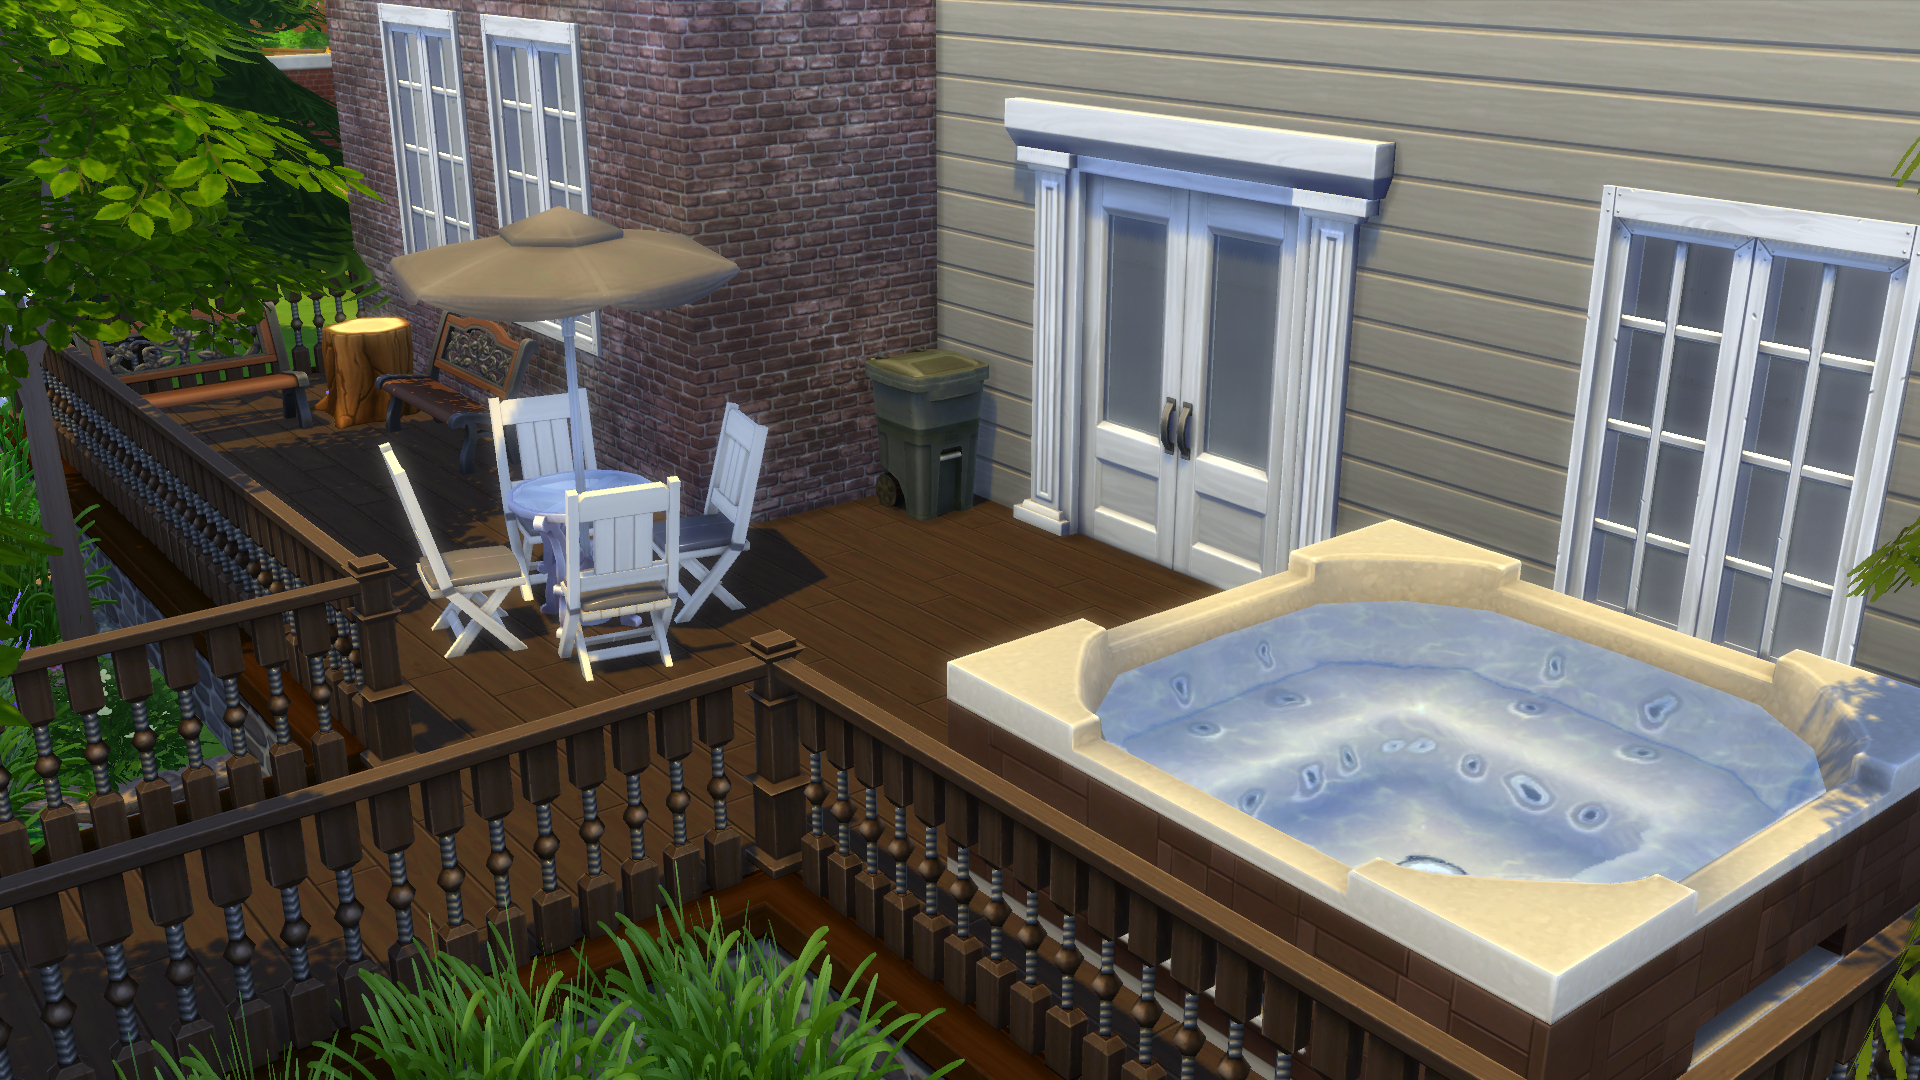 The Sims 4 Building Decorating Your Backyard in 12 Clever Tricks of How to Build Decorating A Backyard